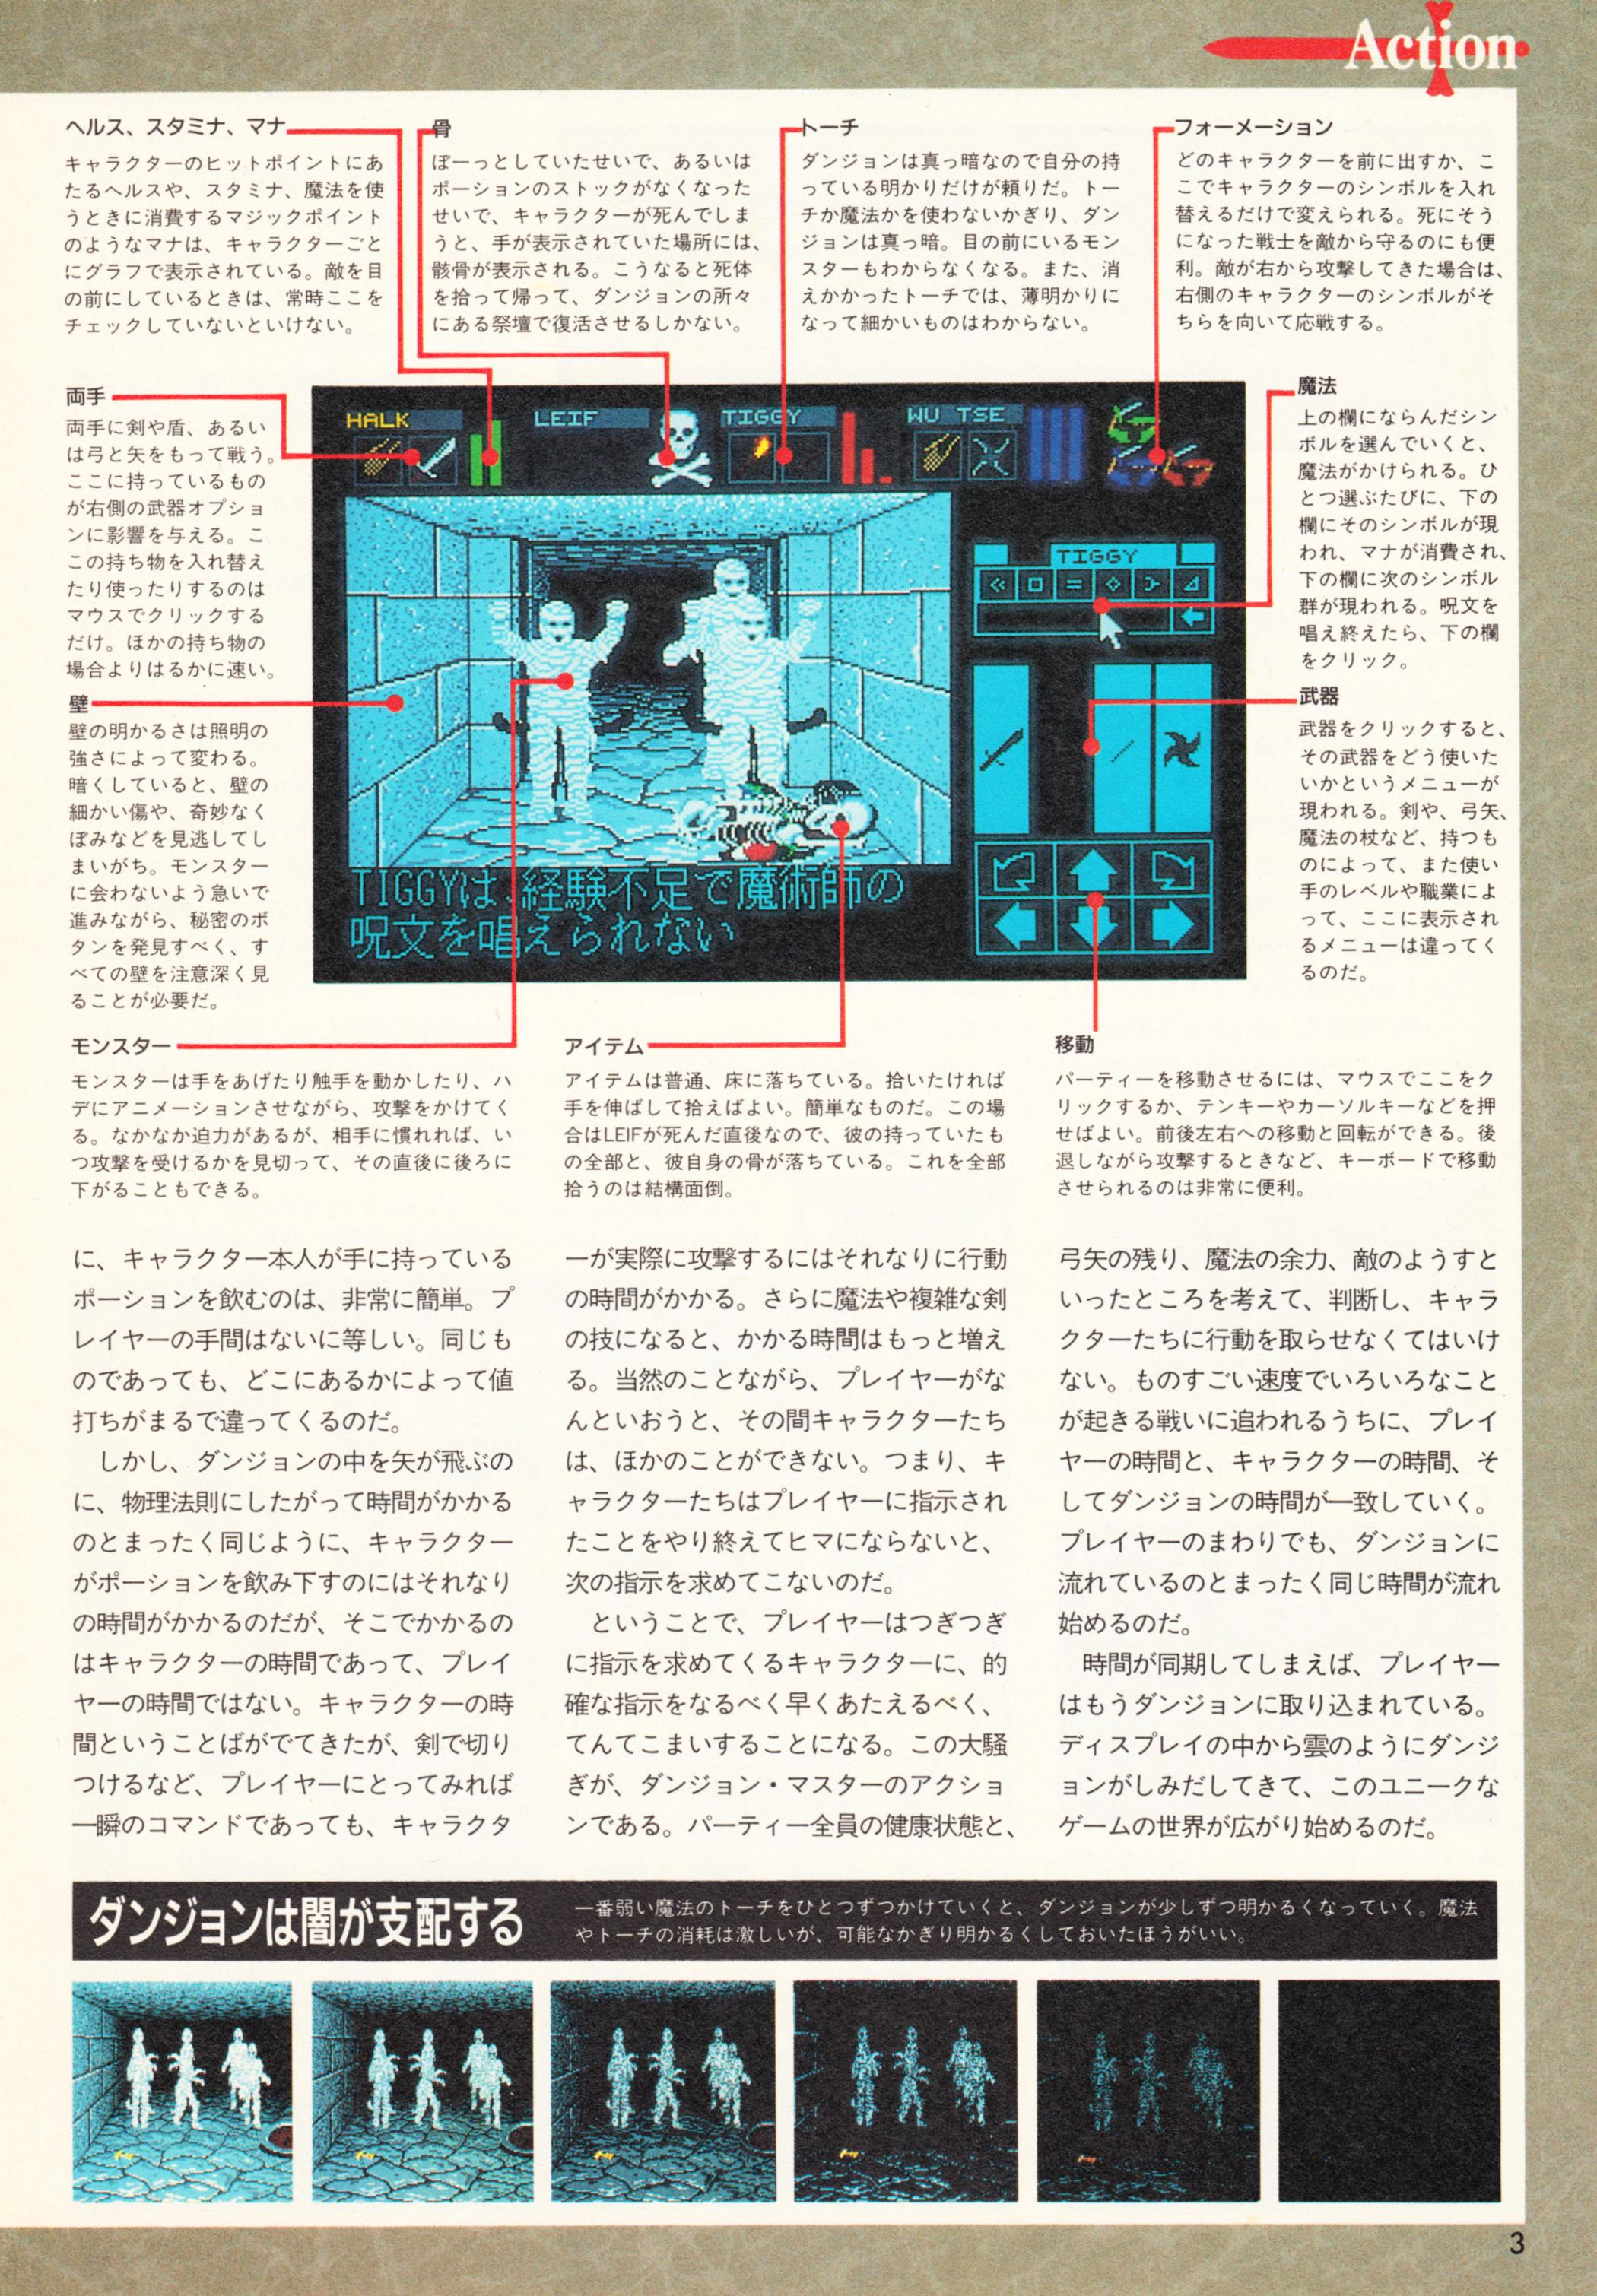 Special Supplement 2 - Dungeon Master Guide published in Japanese magazine 'Login', Vol 9 No 3 02 February 1990, Page 3